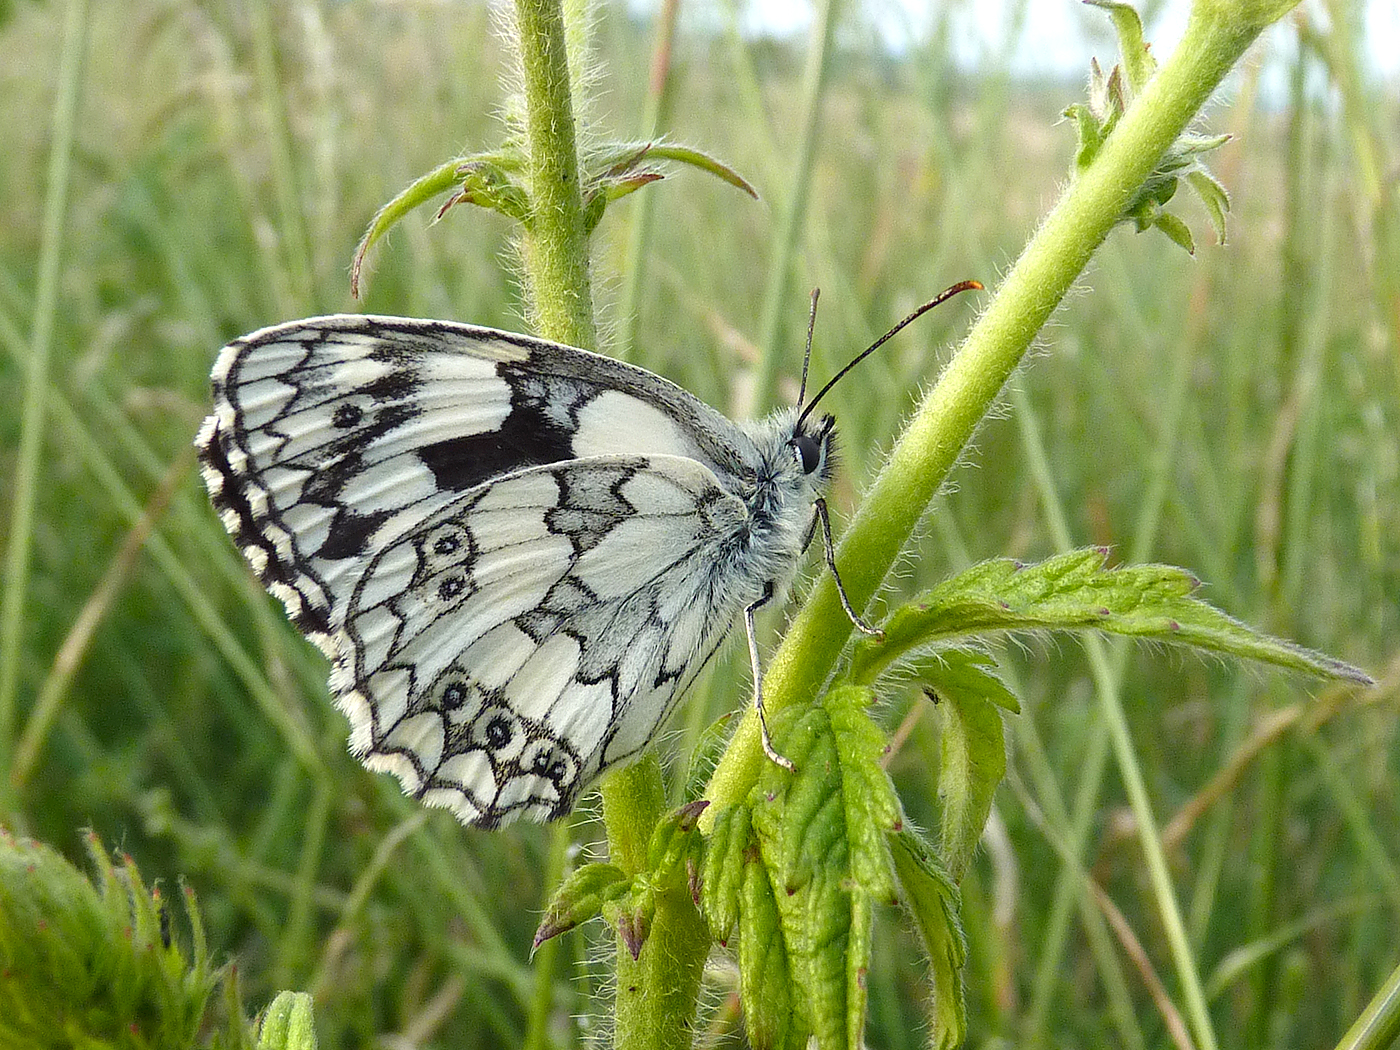 Second 'Marbled White (male)' by Richard Temlett